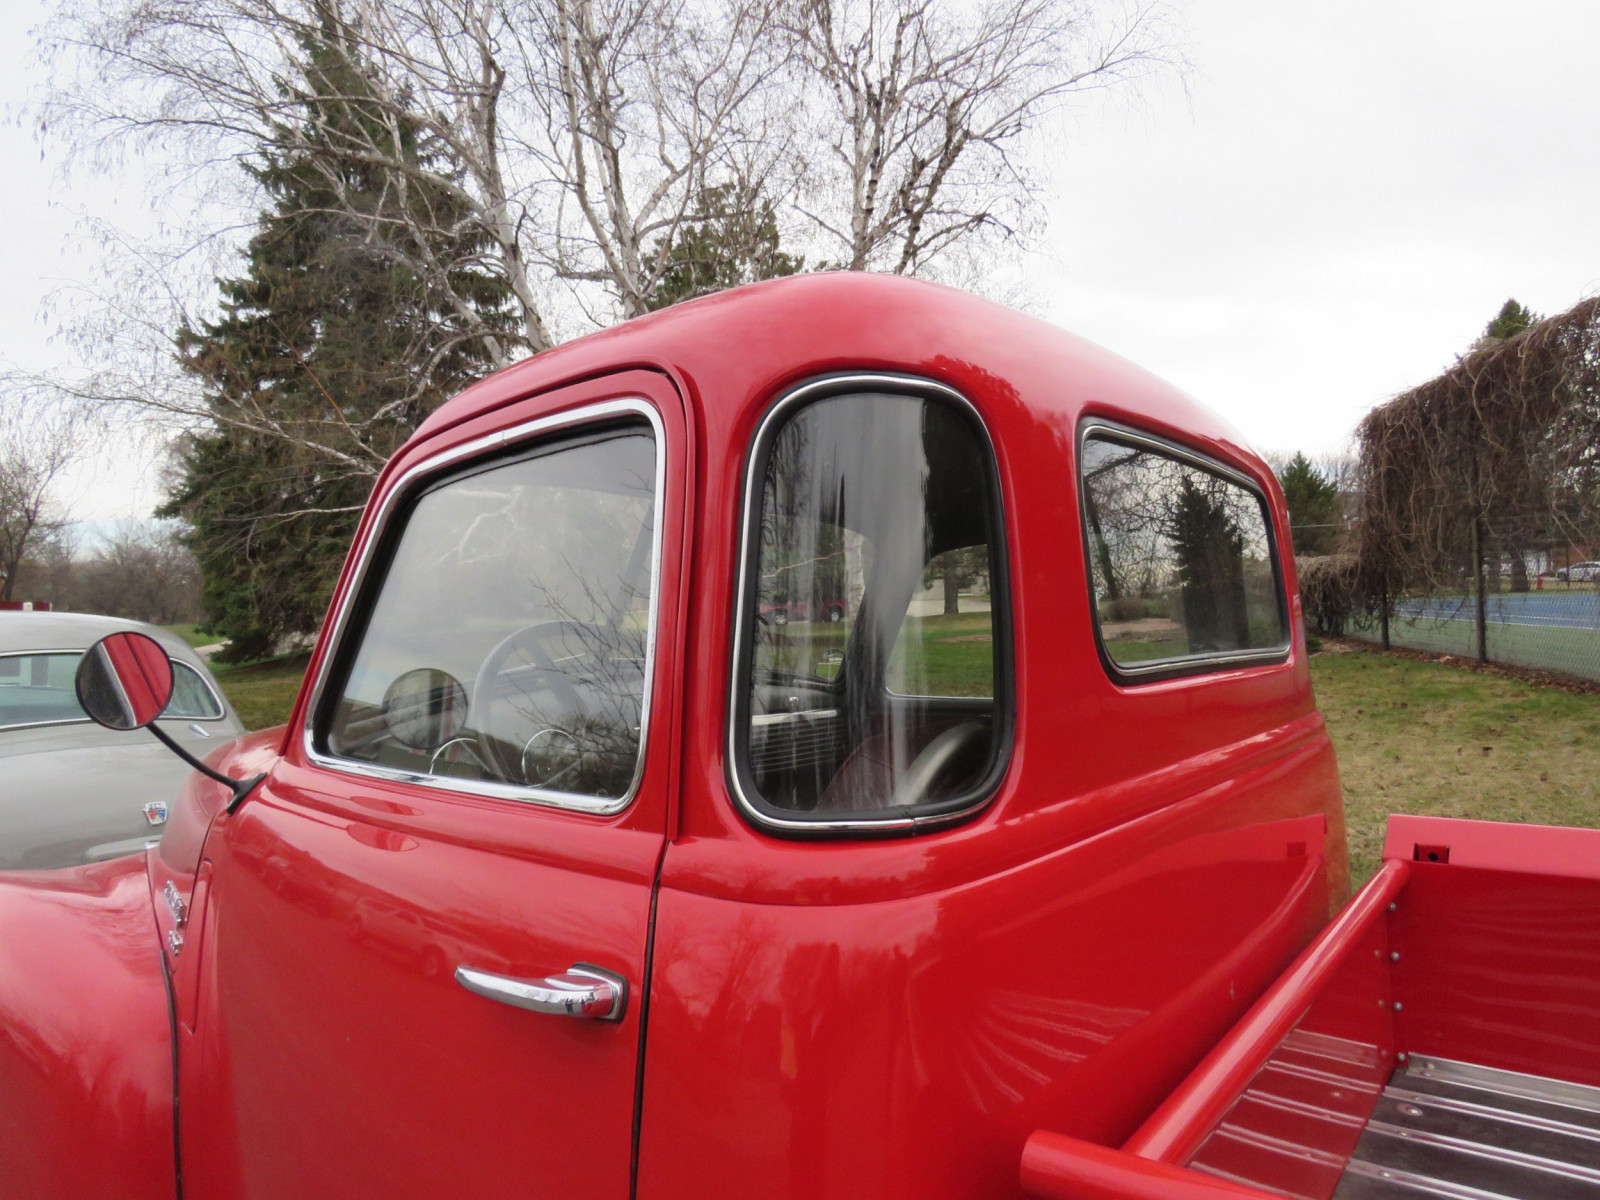 1950 Chevrolet 3100 5 window Pickup - Image 9